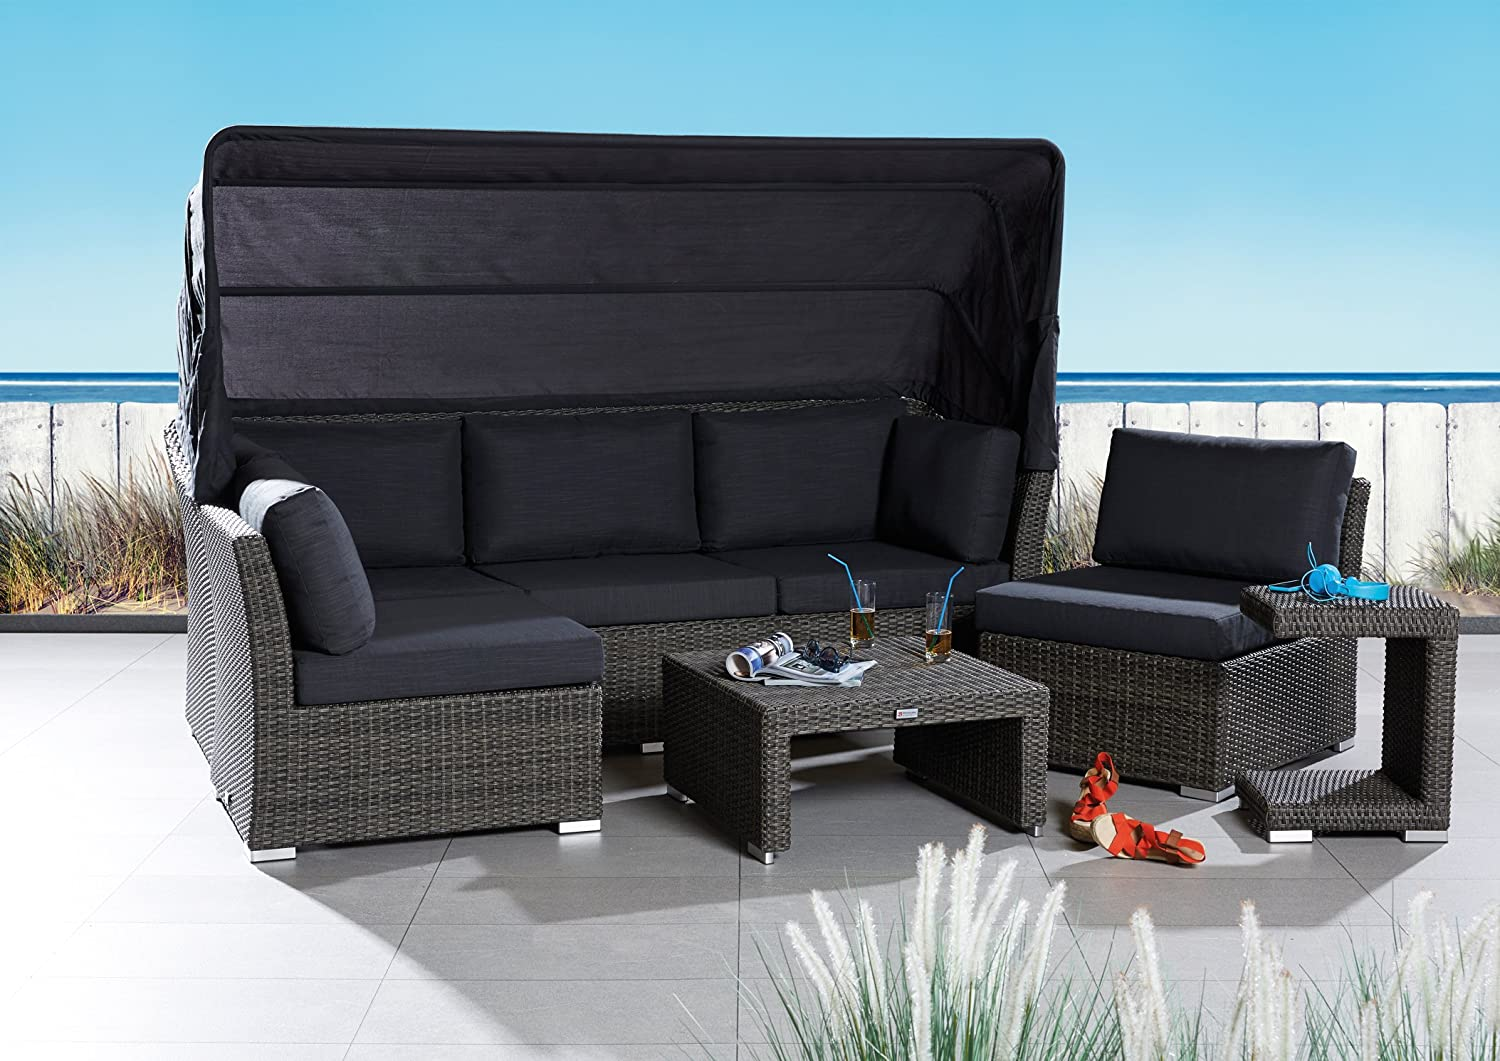 poly rattan sonneninsel set strandkorb barcelona relax gartenm bel muschel set strandmuschel. Black Bedroom Furniture Sets. Home Design Ideas